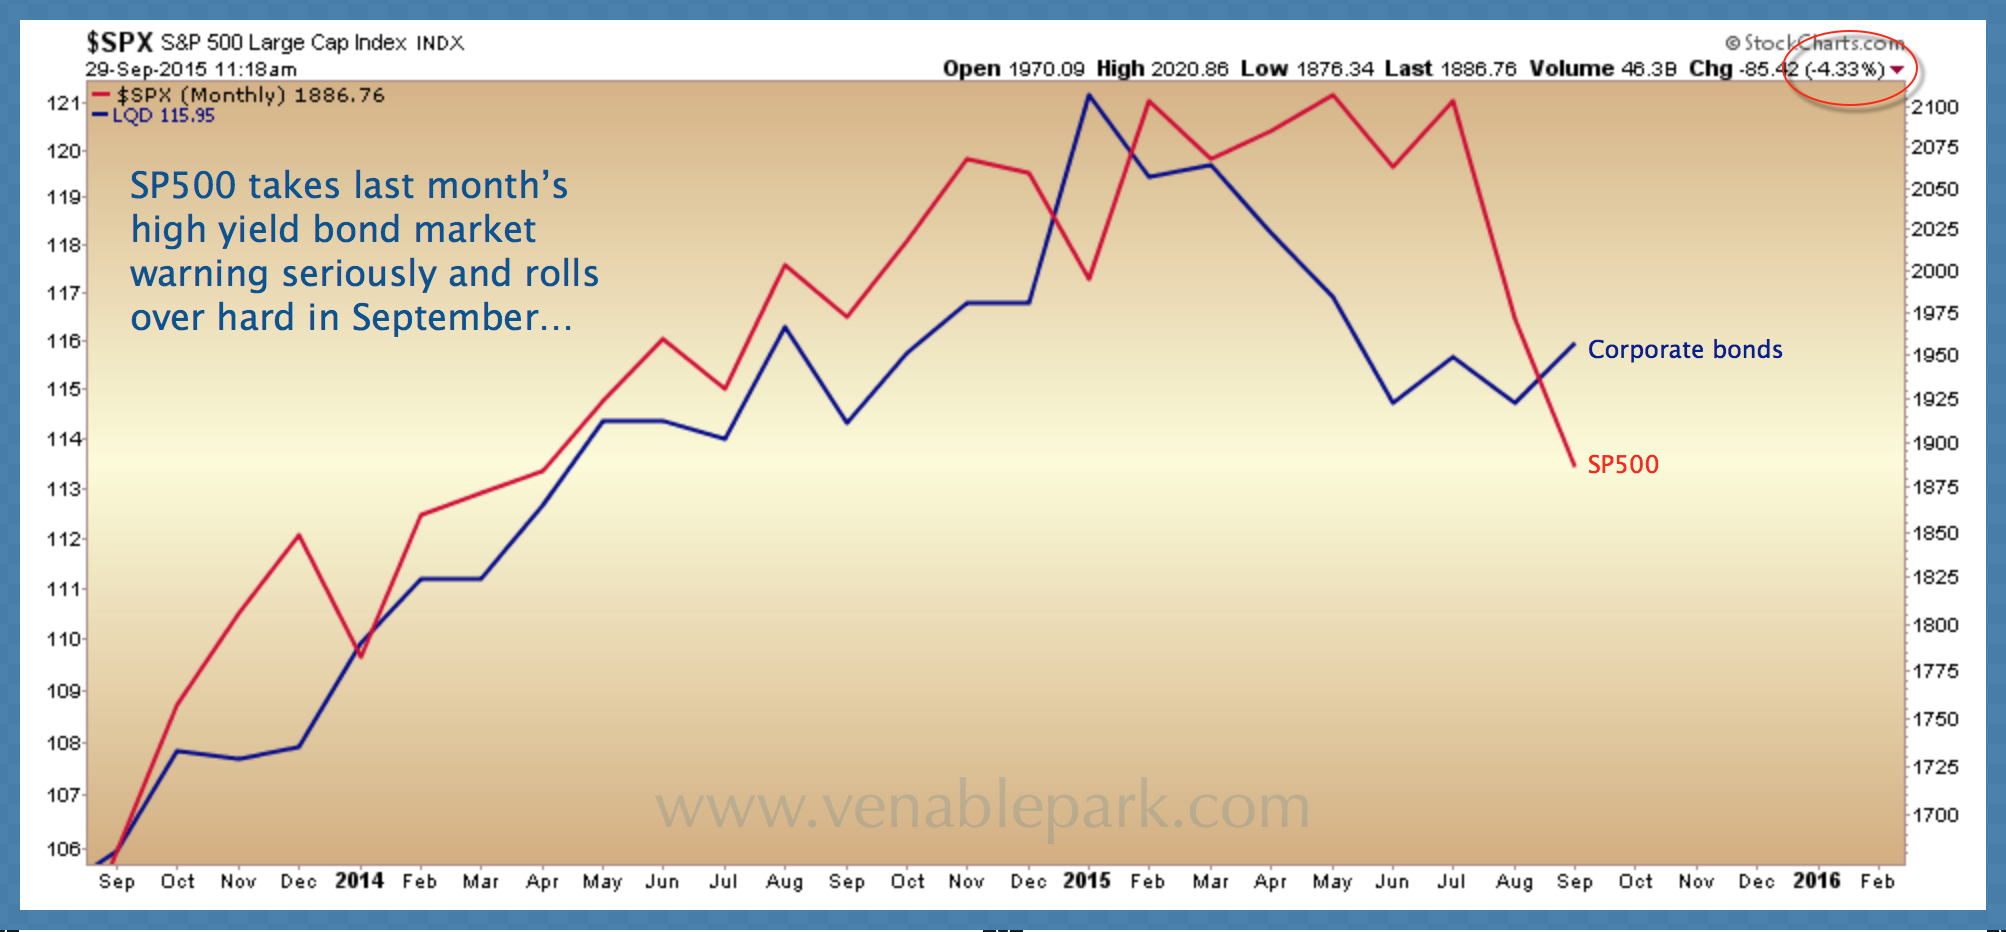 S&P catches down to hi yield Sept 29 2015